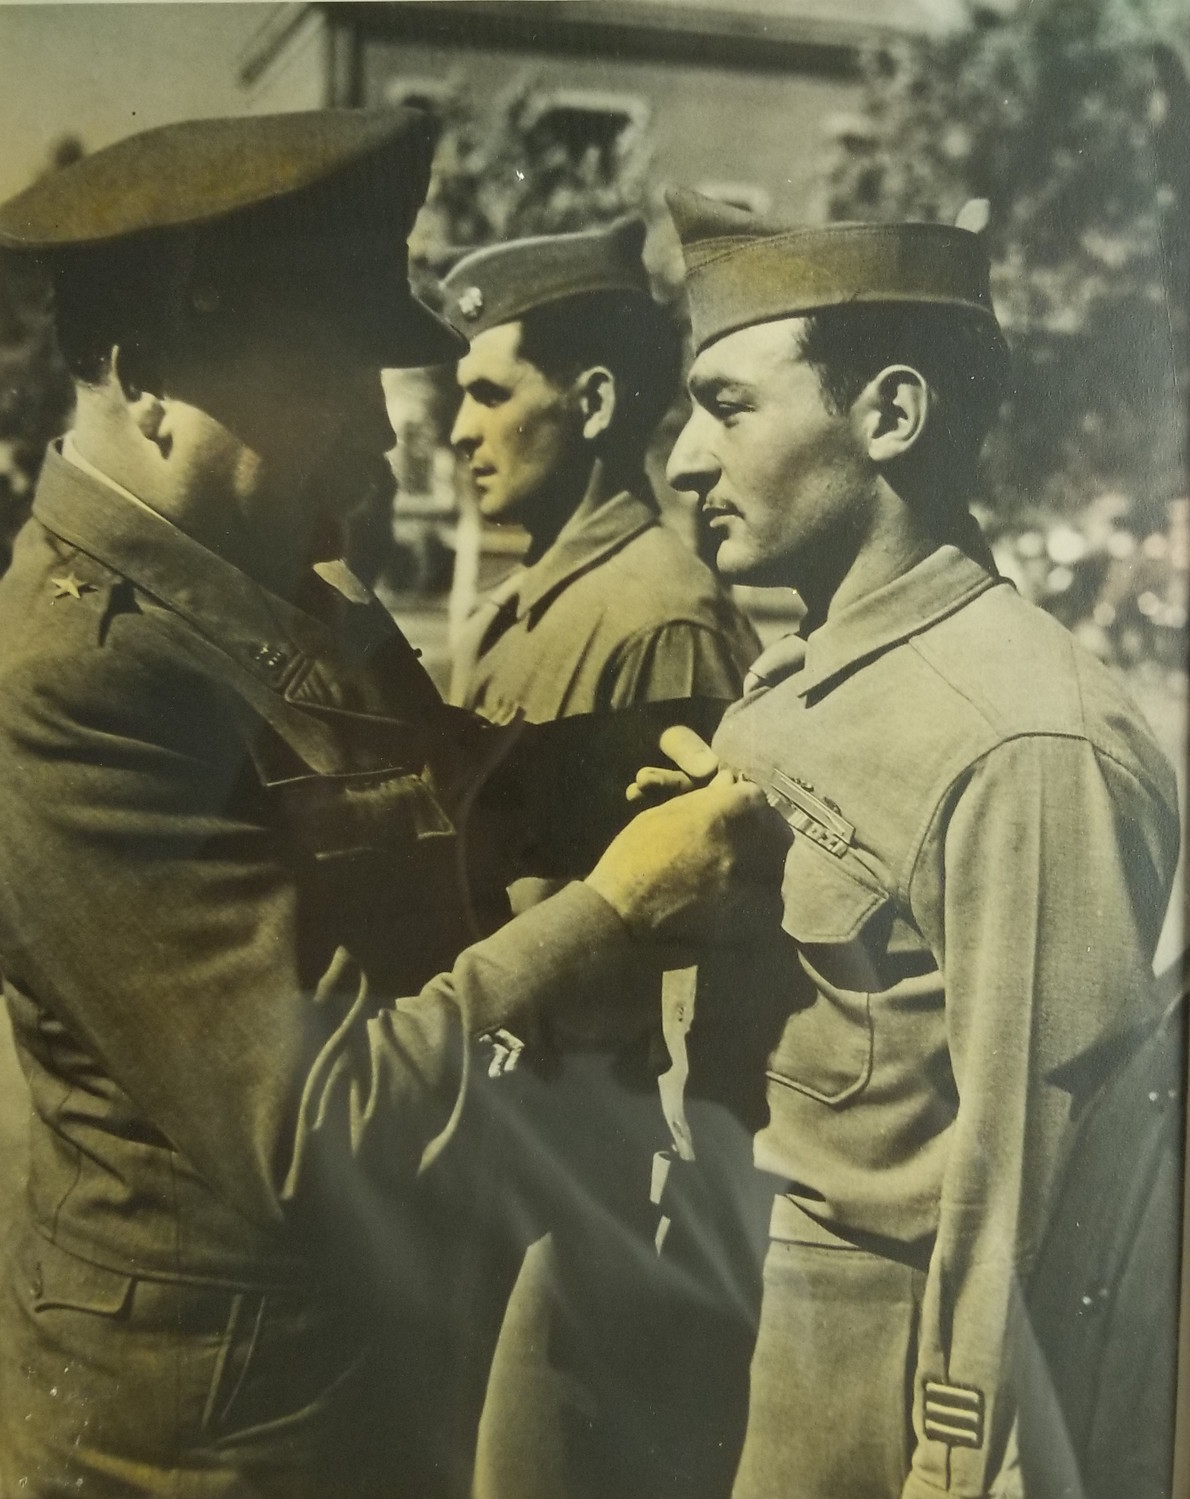 At 21, Caggiano received the Bronze Star after being on the front line as a machine gunner in Italy in 1946, his last year of service.